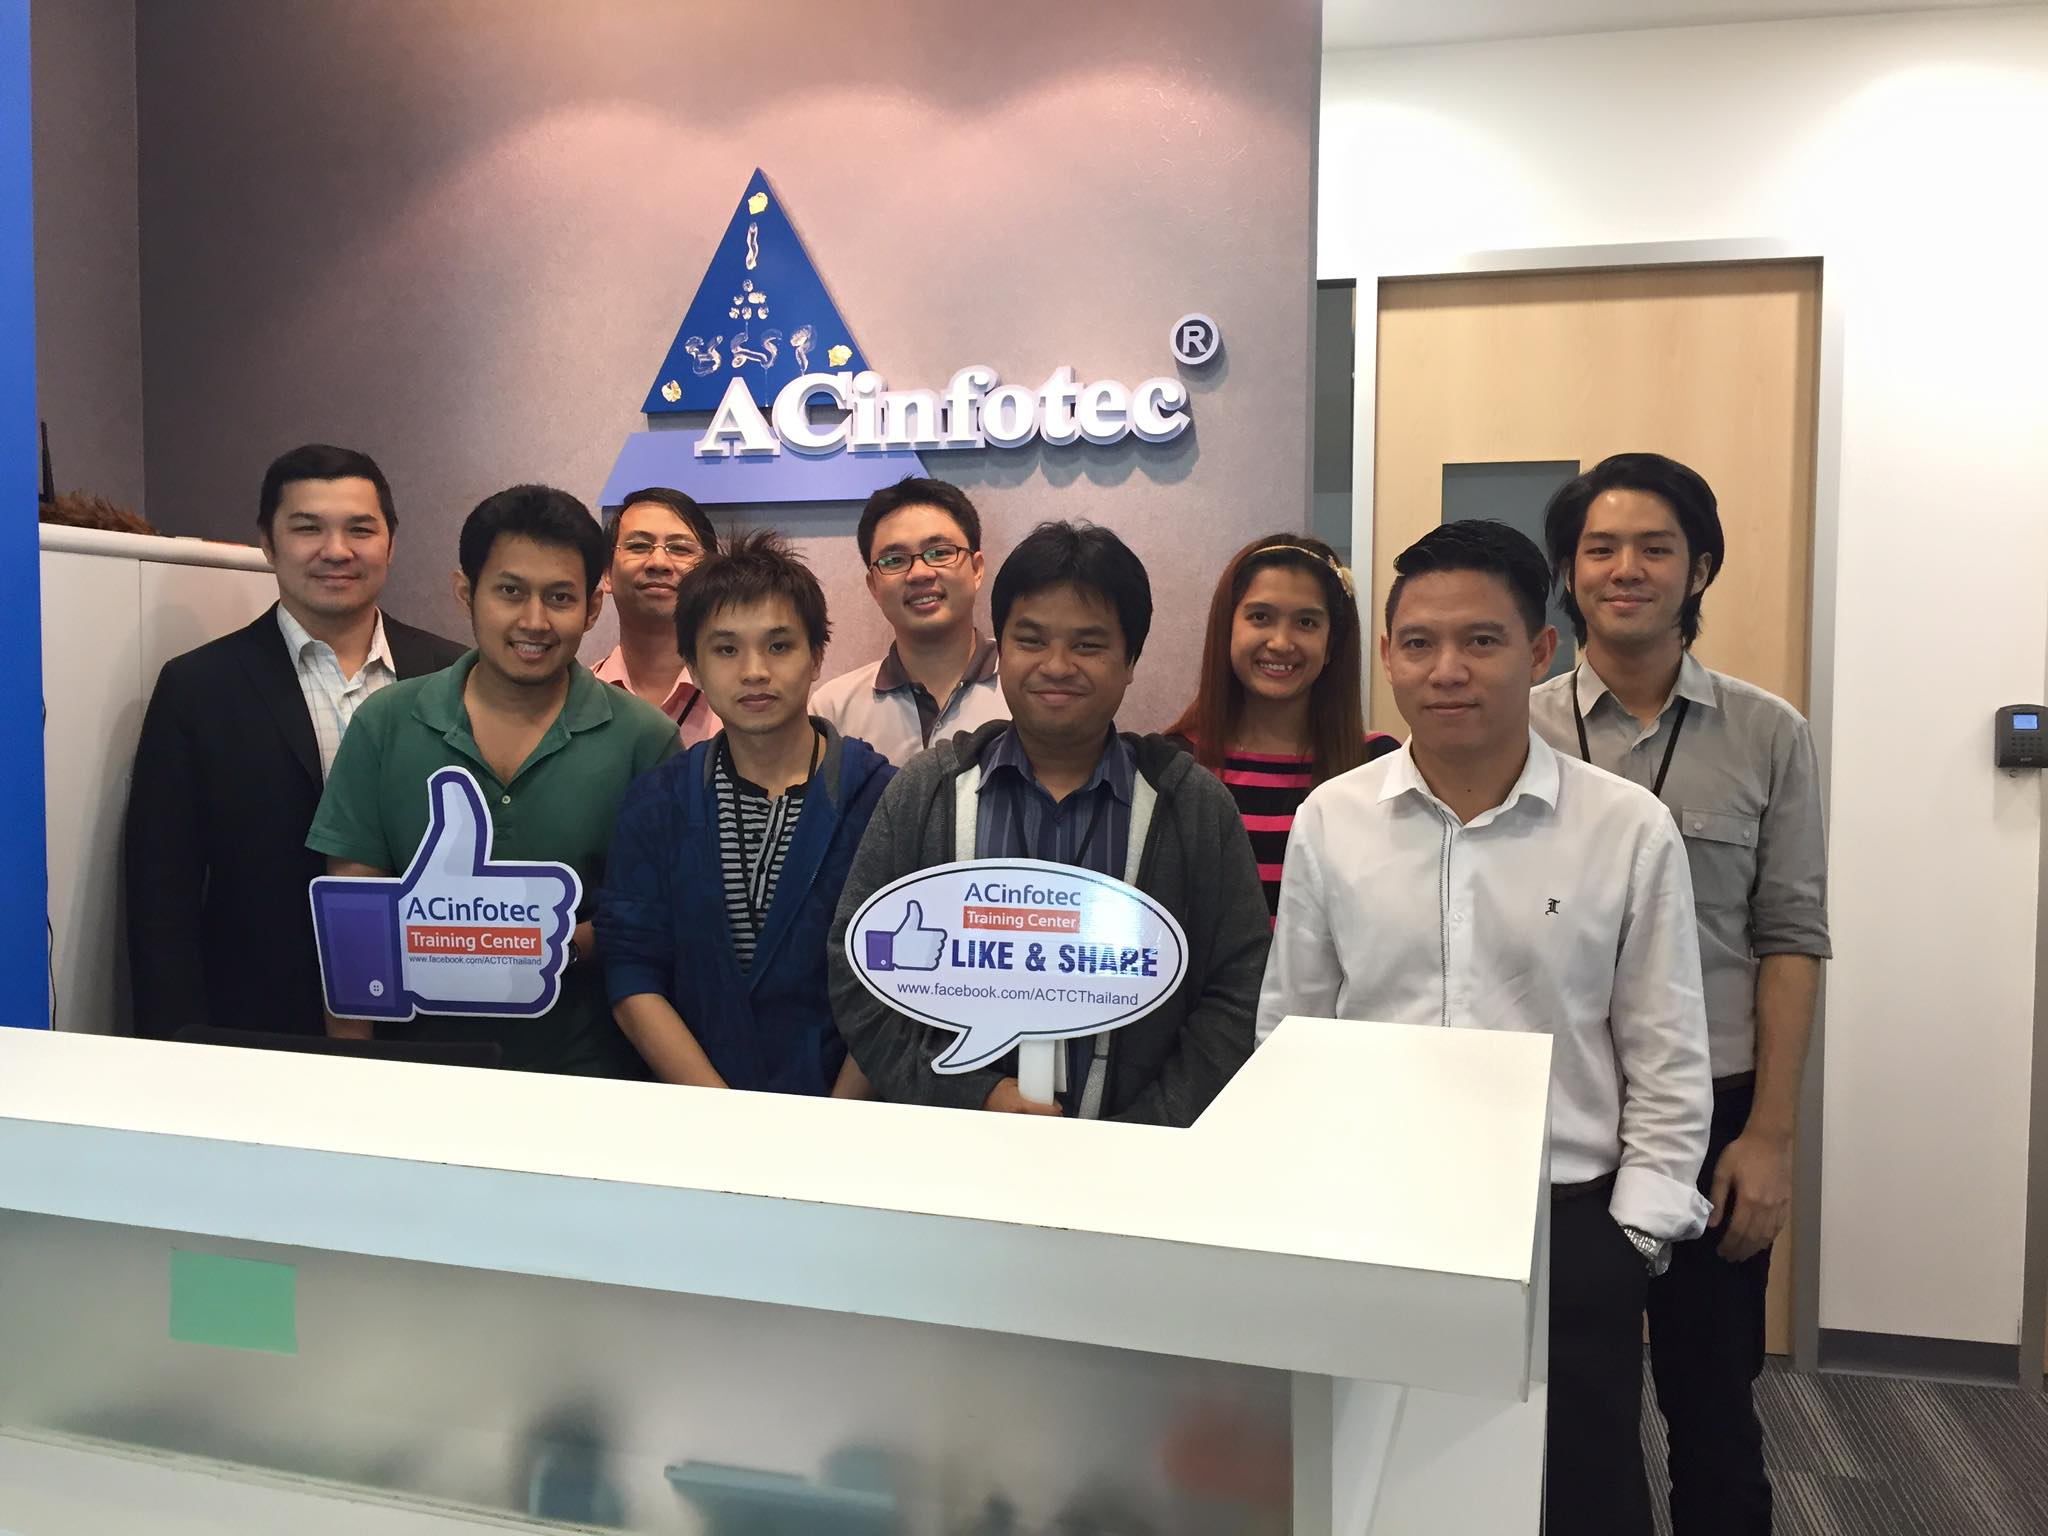 Acinfotec จัดอบรมหลักสูตร CEH (Certified Ethical Hacker)